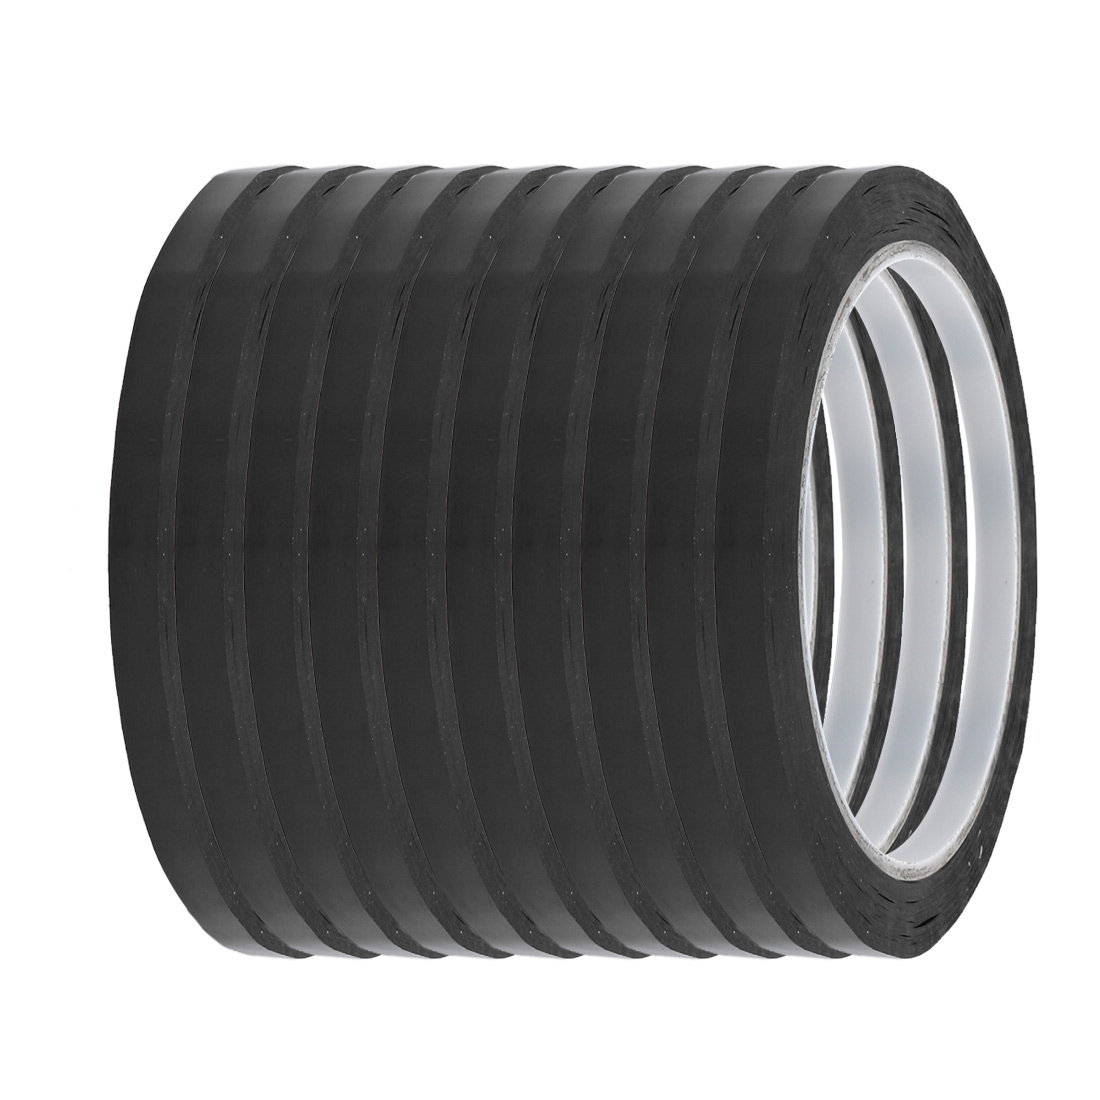 4mm Width 164ft Length Single-side Electrical Insulated Adhesive Tape 10pcs